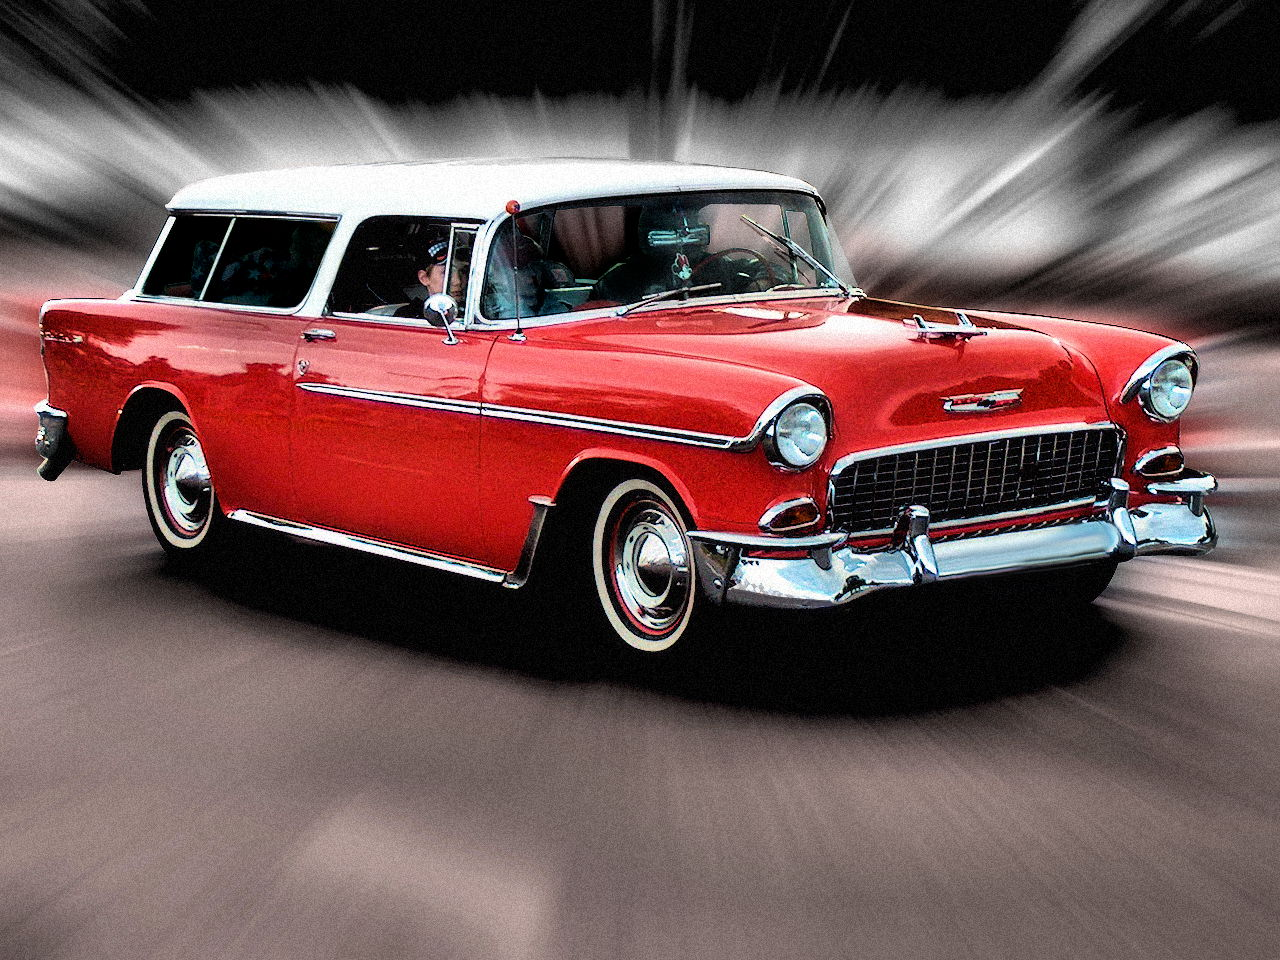 Cars, Cars Reviews and Car Pictures: Classic Car 1956 Chevrolet Nomad